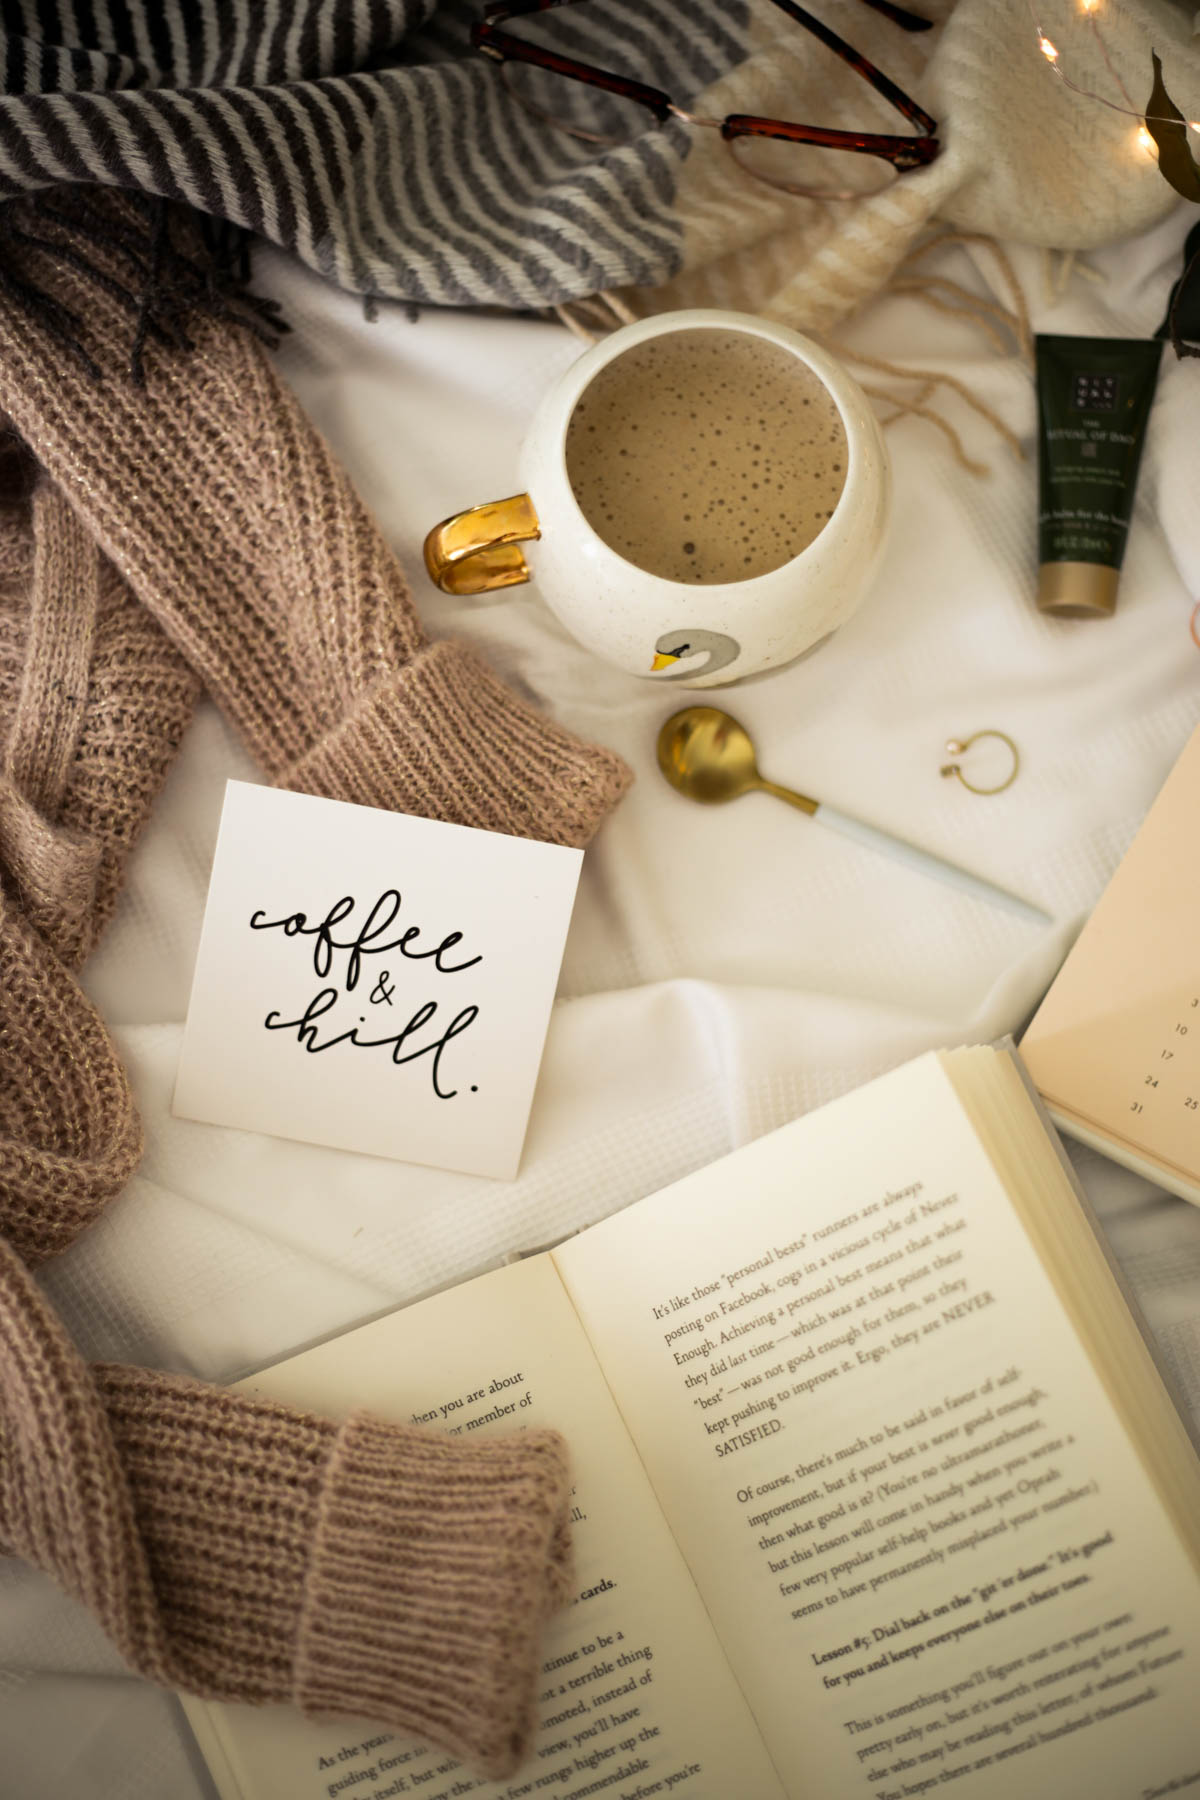 Some Evening Rituals to help me wind down- featuring book and scarf styled on bed_